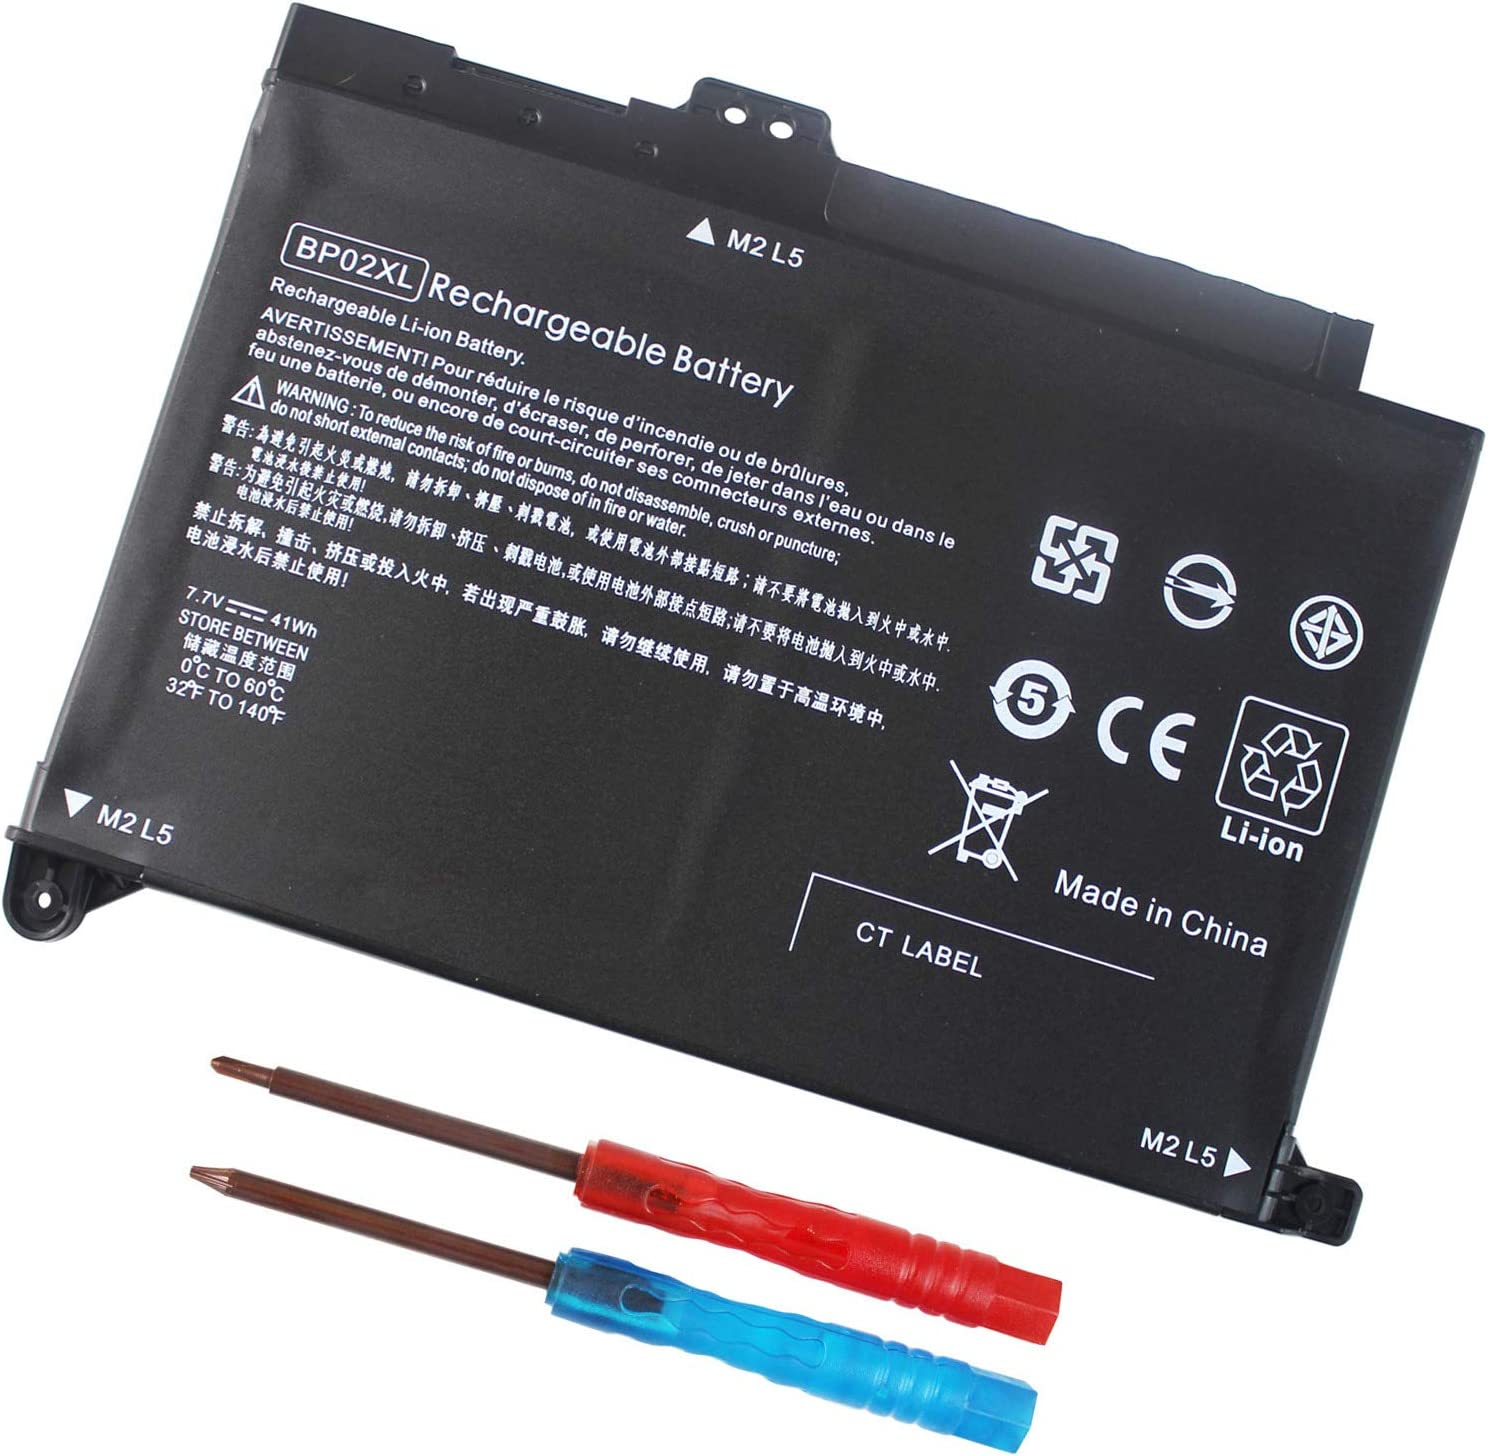 BP02XL Battery for HP Pavilion PC 15 Series 15T-AU000 15Z-AW000 15-AW068NR 15-AU010WM 15-AU023CL 15-AU123CL 15 -AU062NR 15-AU063NR 15-AU091NR 15-AU063CL 849909-850 849909-855 849569-421